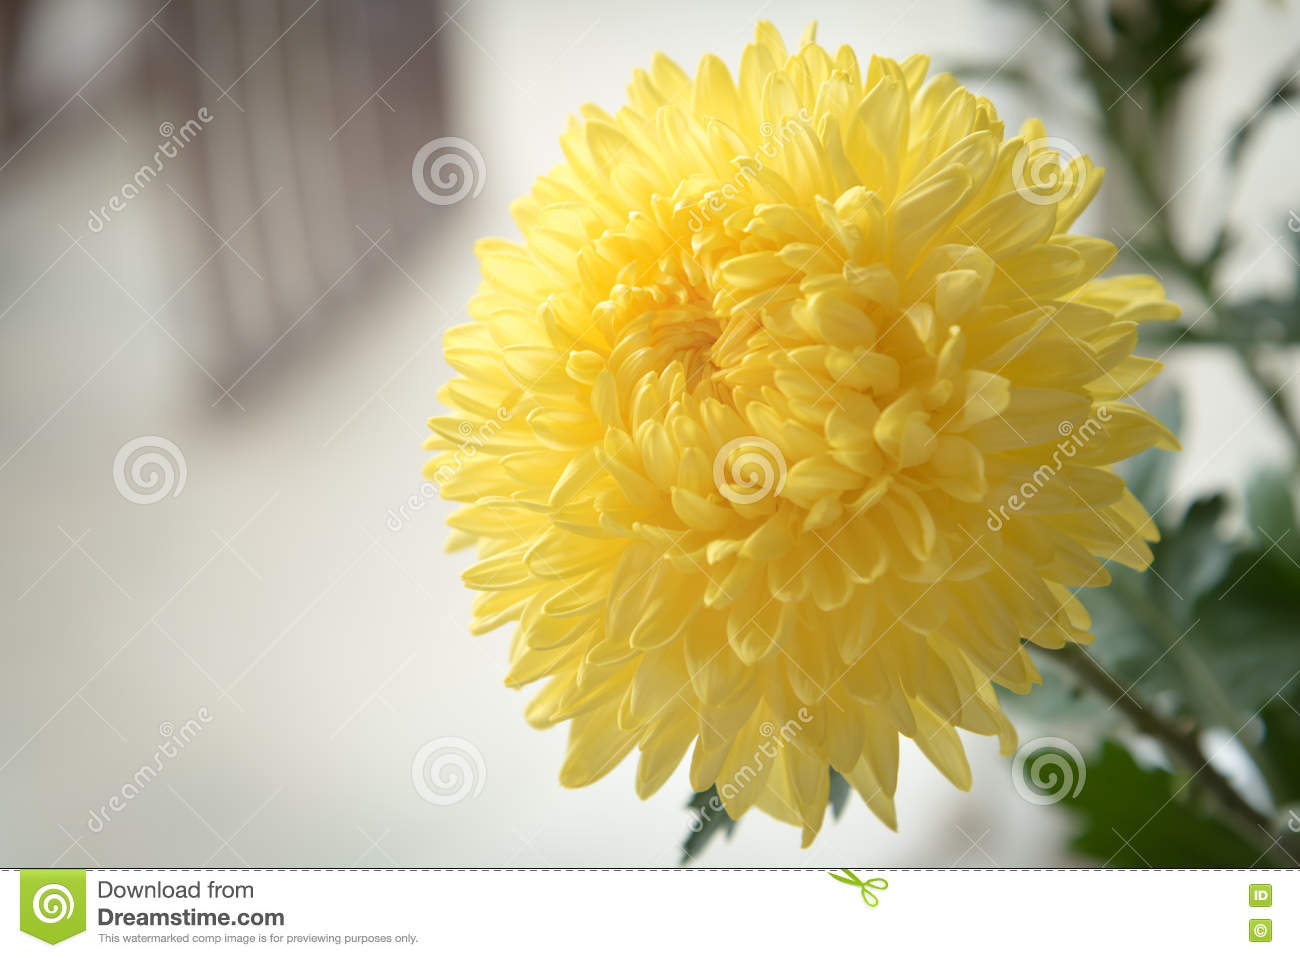 Yellow chrysanthemum golden daisy flower stock image image of yellow chrysanthemum golden daisy flower izmirmasajfo